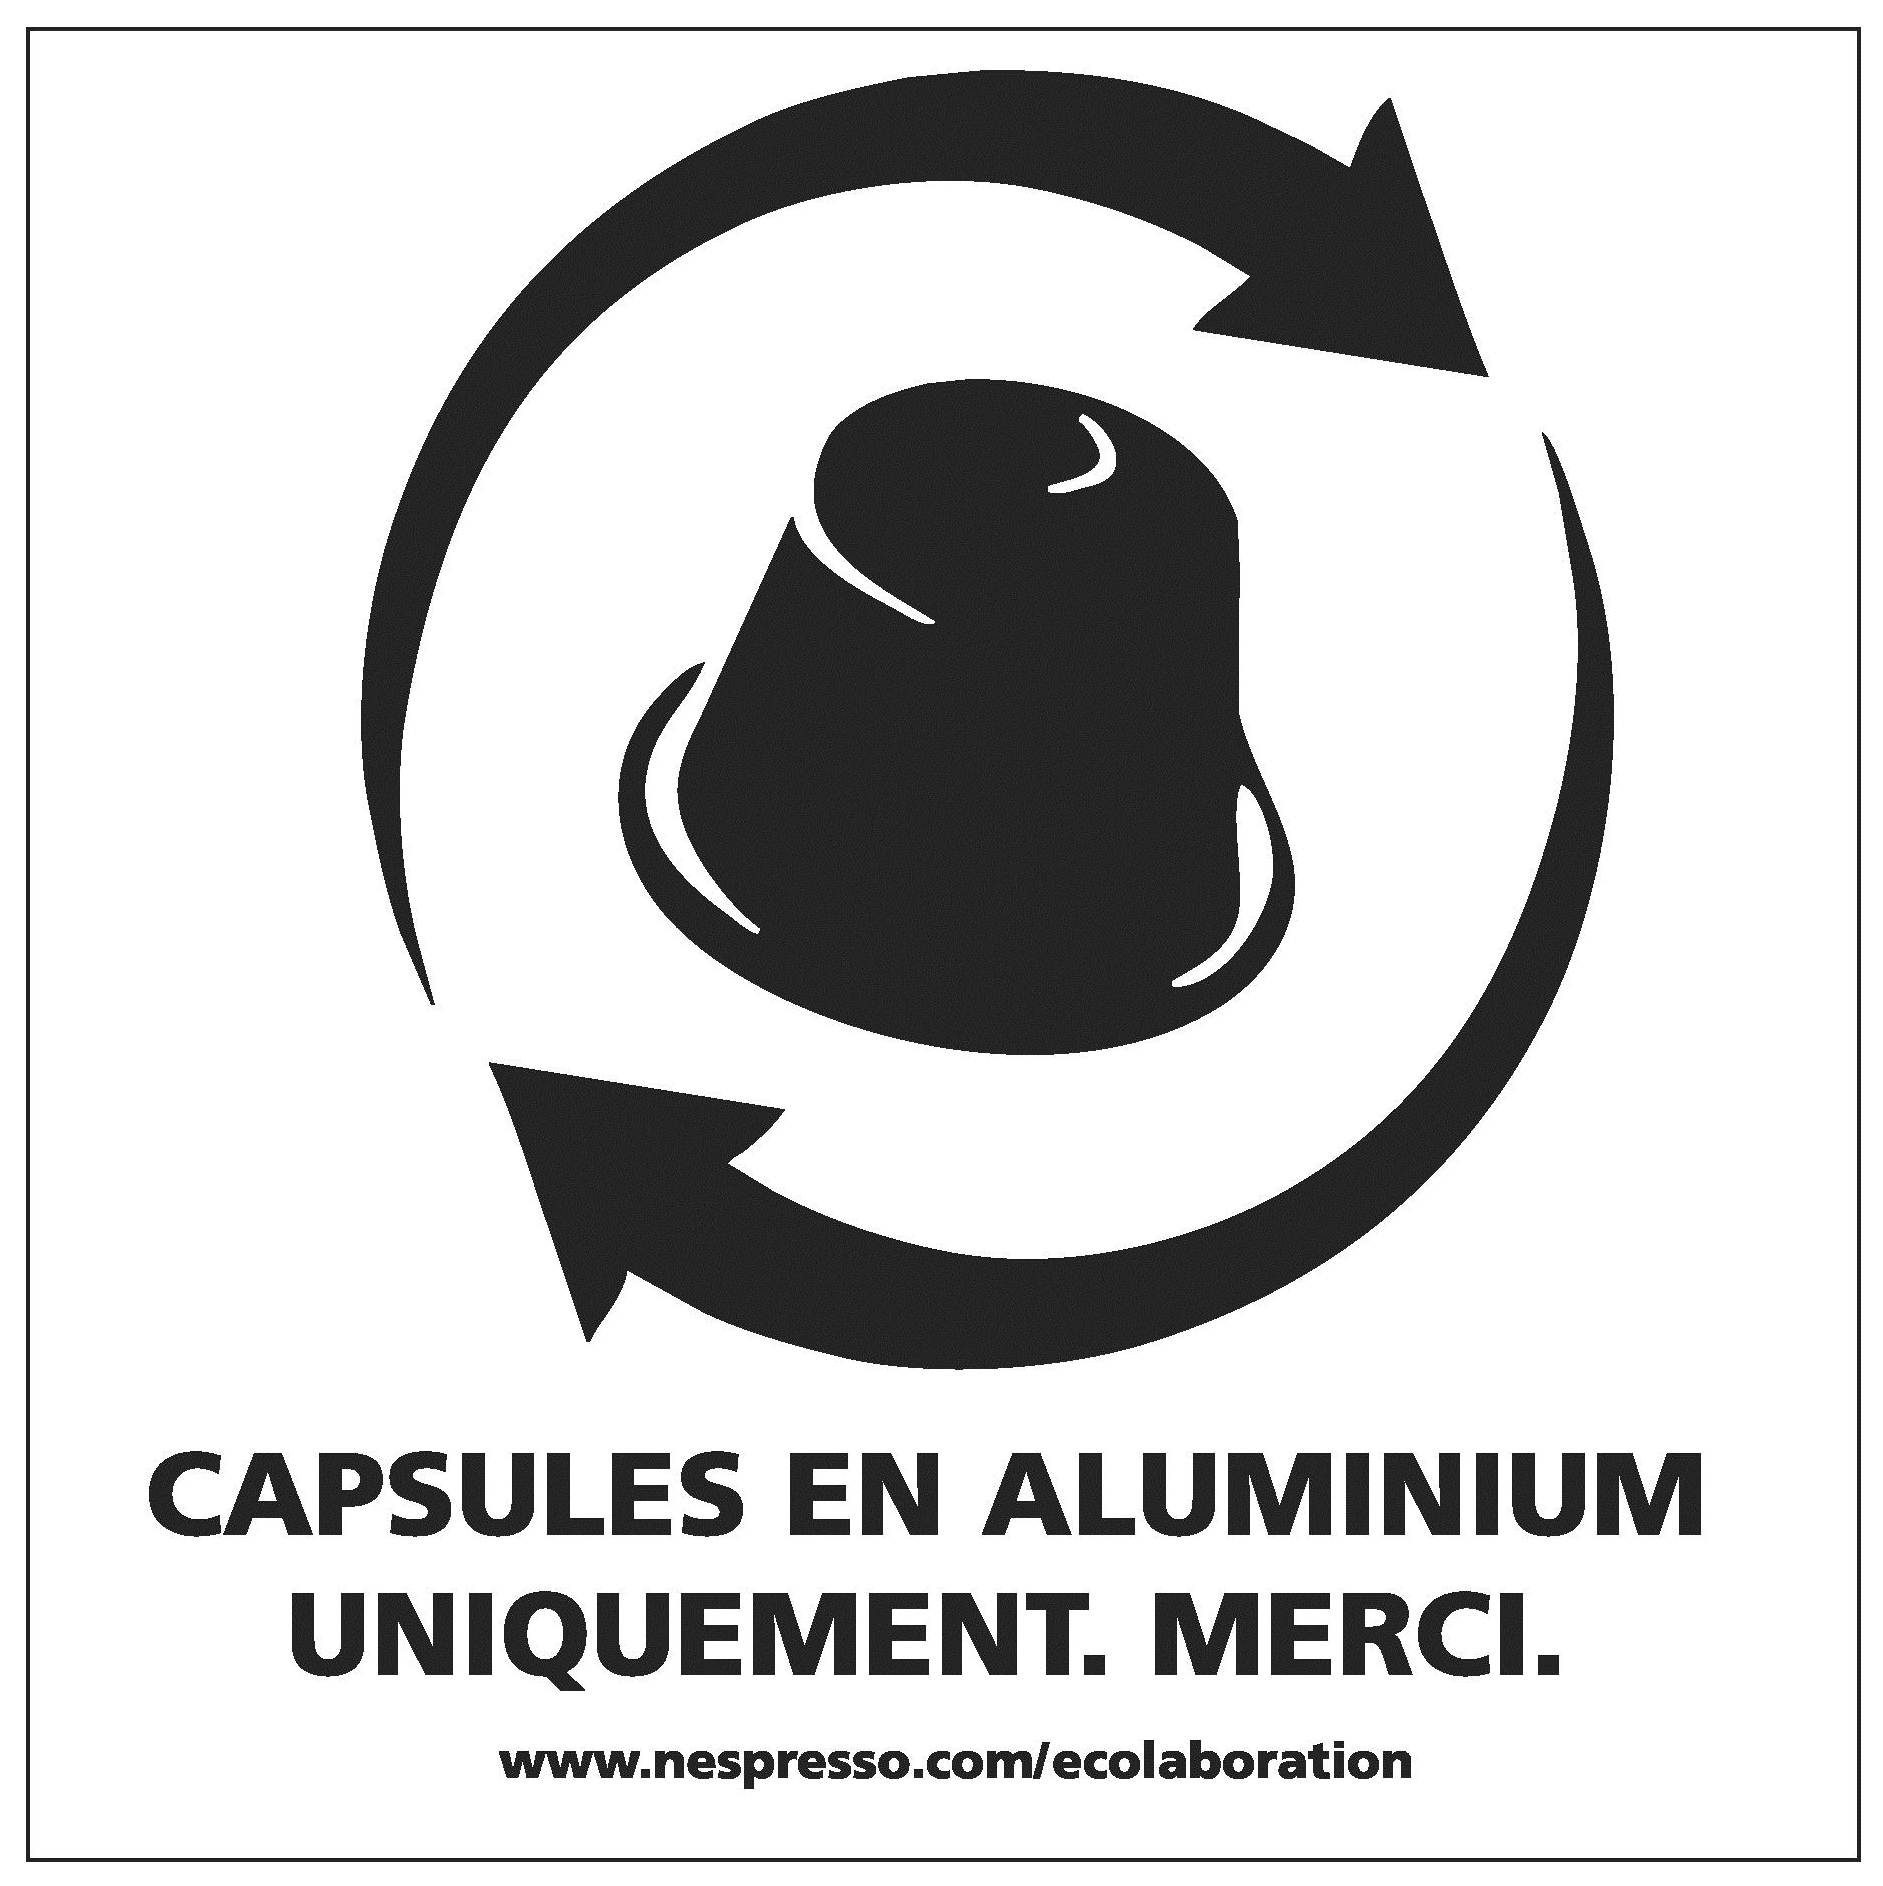 Recyclage capsules nespresso fashion designs - Recyclage capsules nespresso points de collecte ...